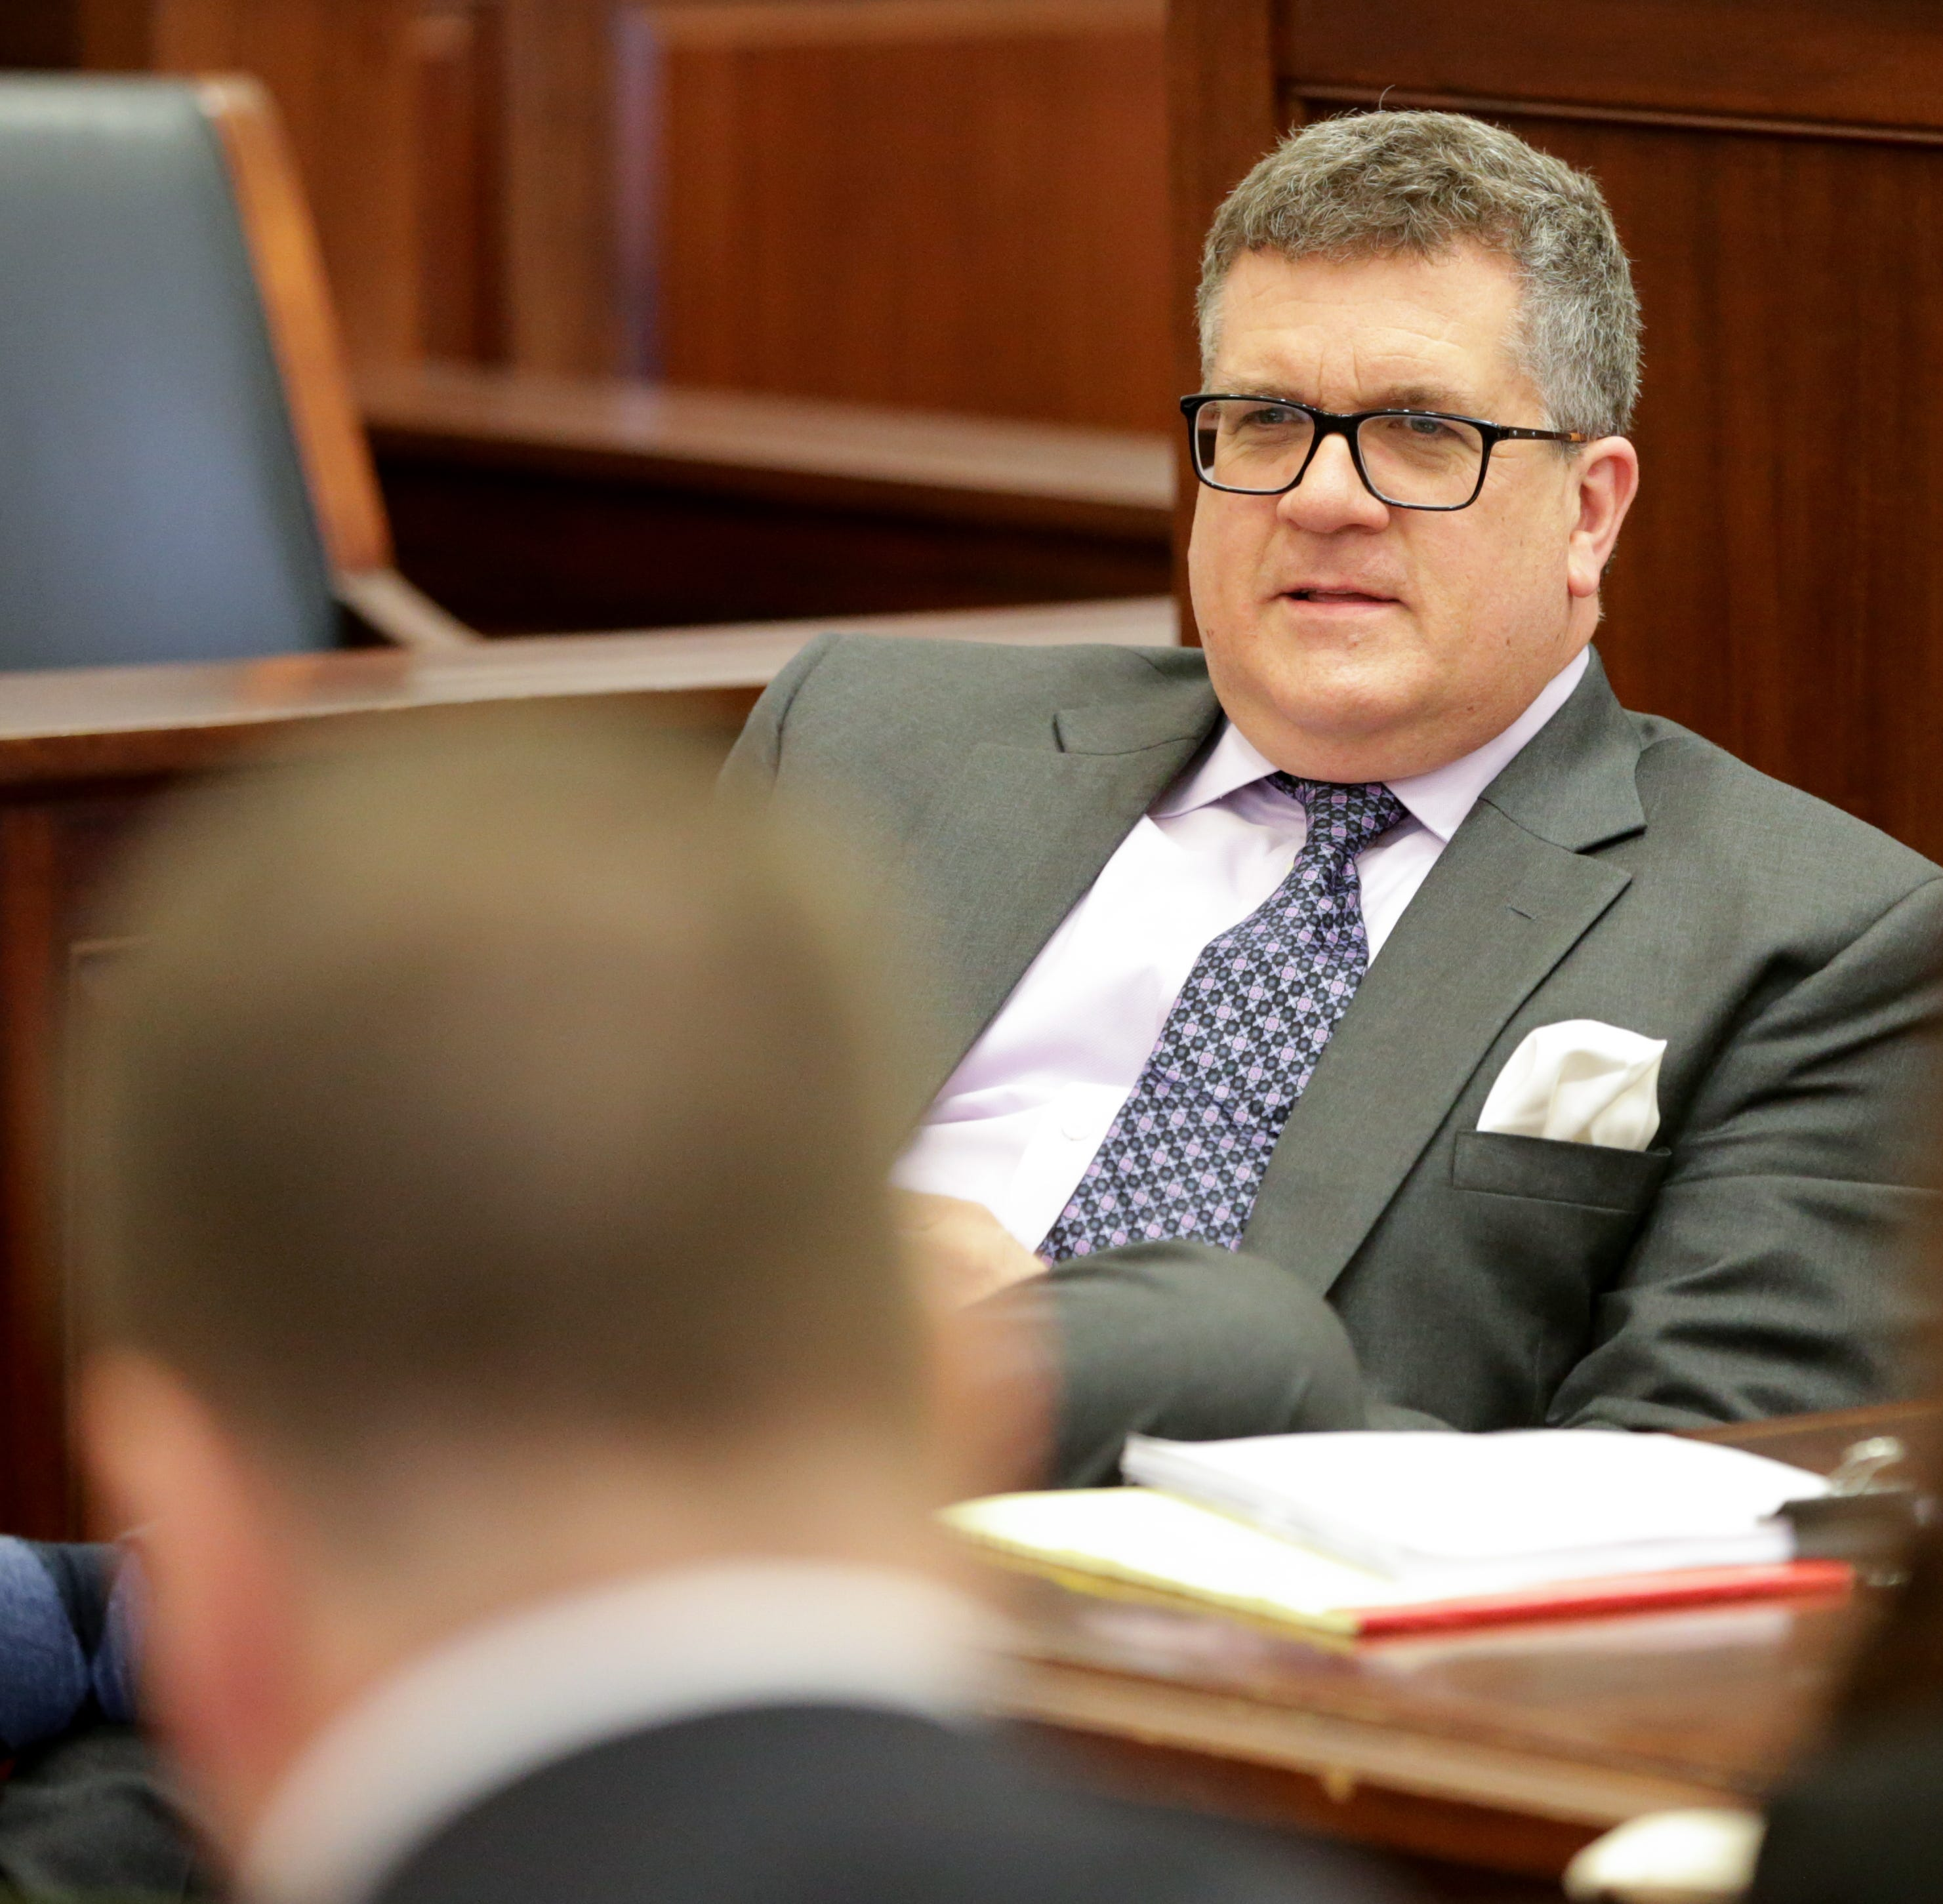 Christopher Finney, the owner of Finney Law Firm, sits during a hearing for a proposed settlement in the lawsuit involving secret texts and email, Thursday, March 7, 2019, in Judge Robert Ruehlman's courtroom in Cincinnati.